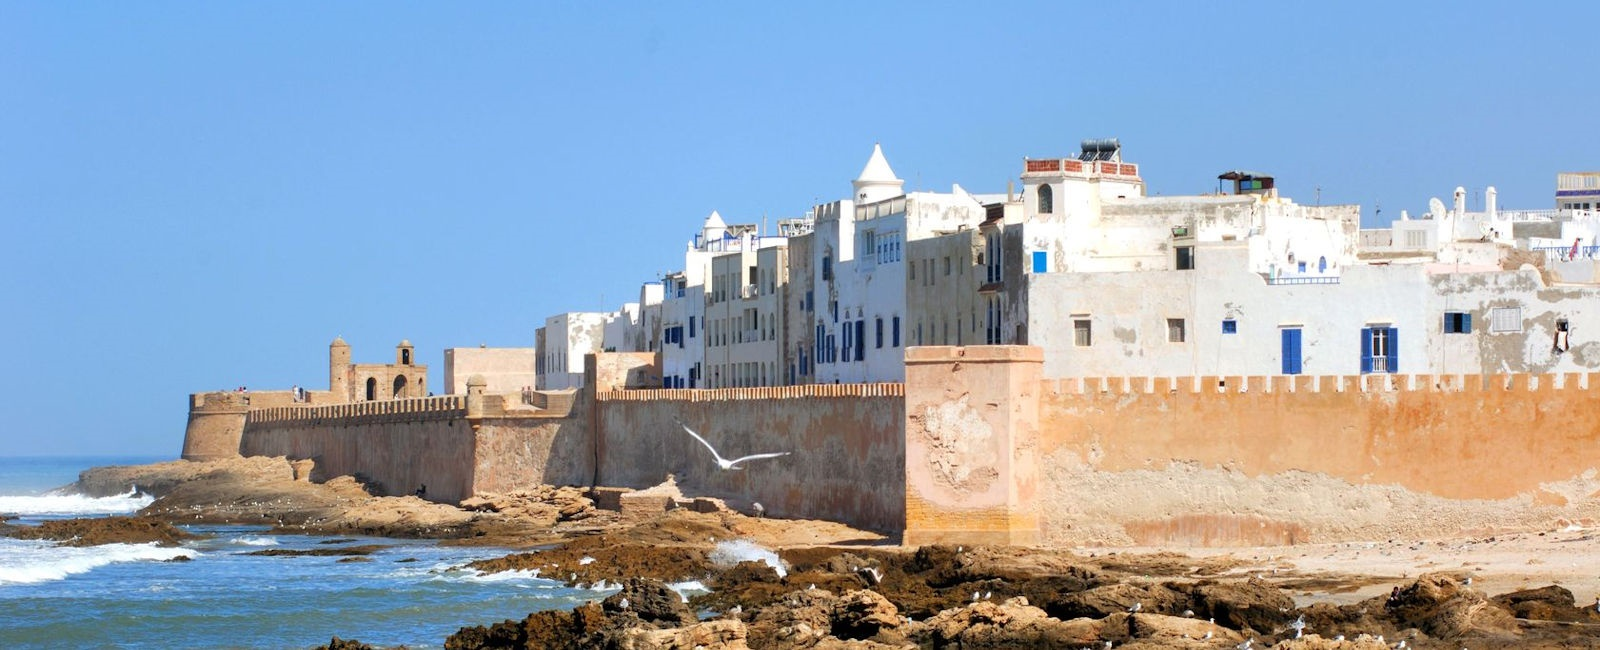 Luxury Essaouira Holidays